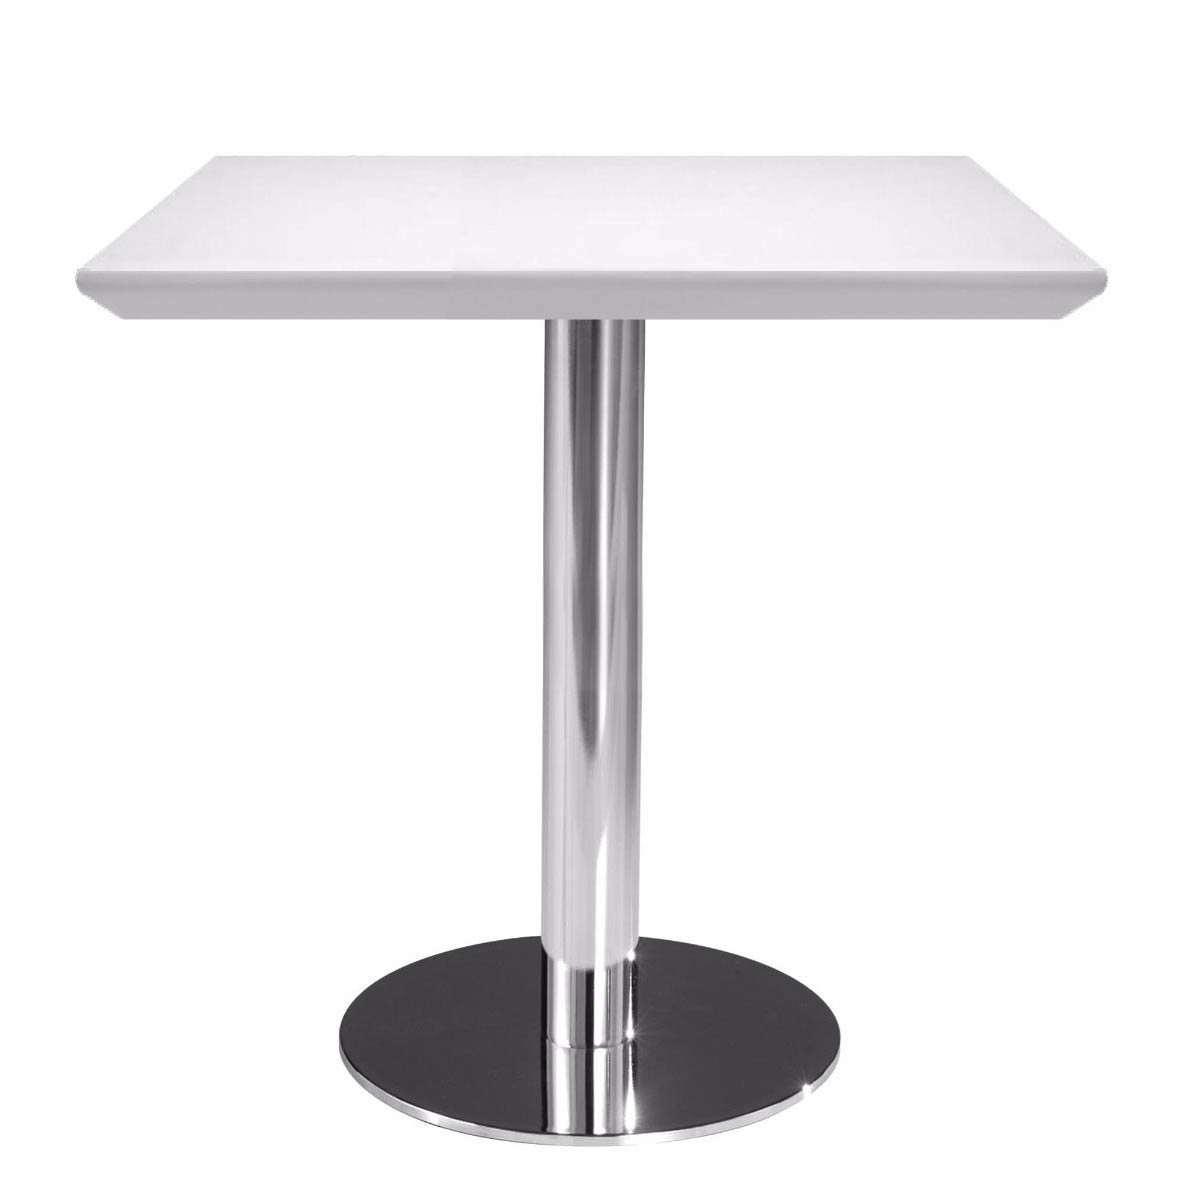 J91 Series Caf233 Table : j91 series cafe tables from www.falconproducts.com size 1080 x 1080 jpeg 69kB